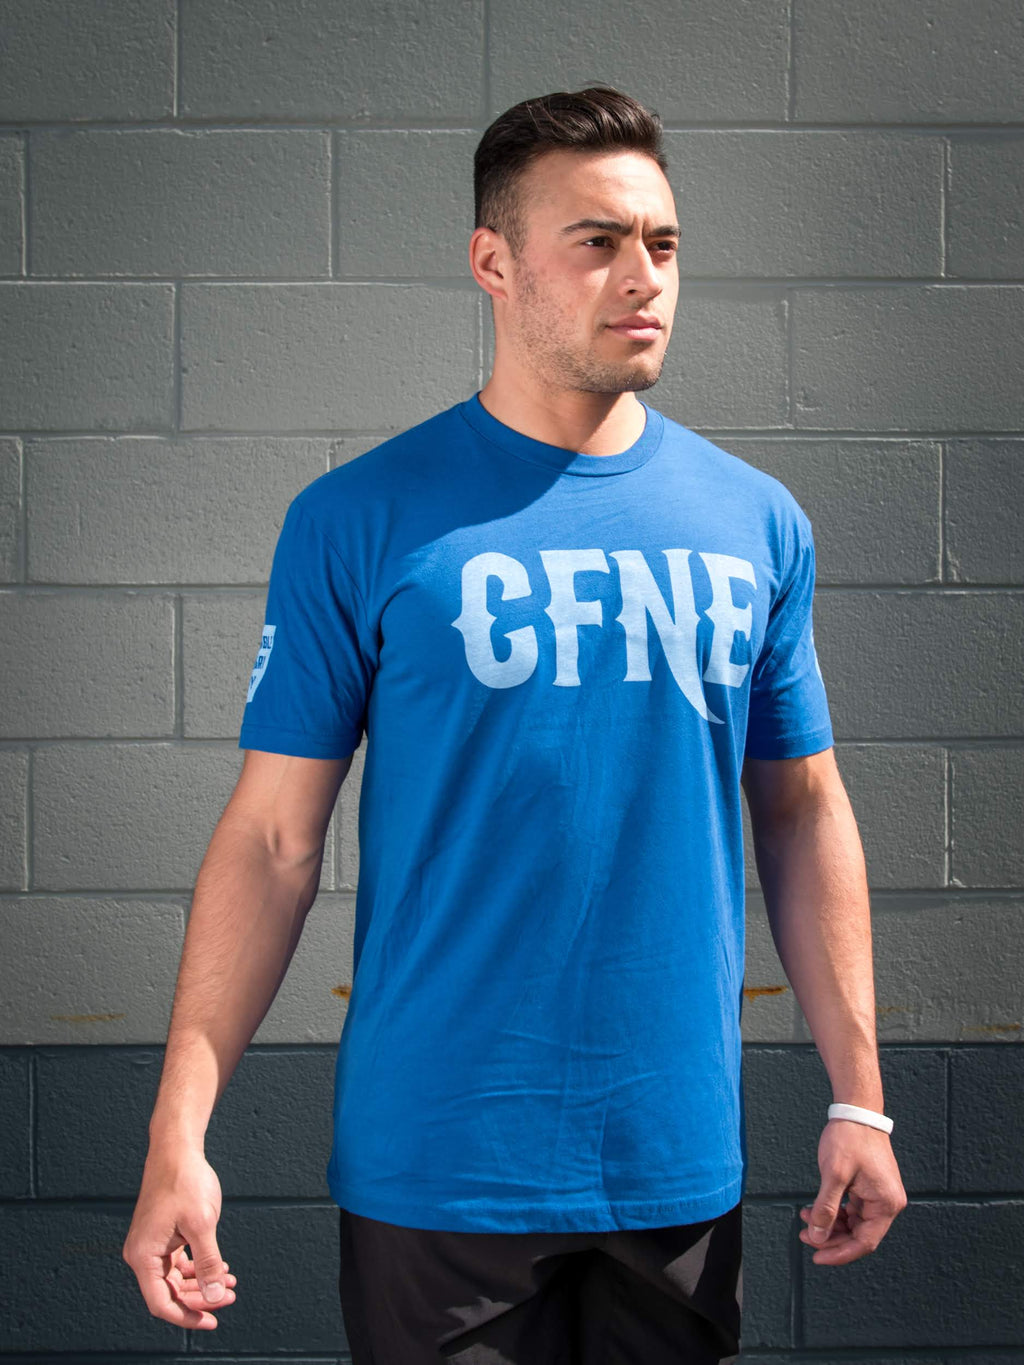 CFNE Men's T-Shirt - Royal Blue